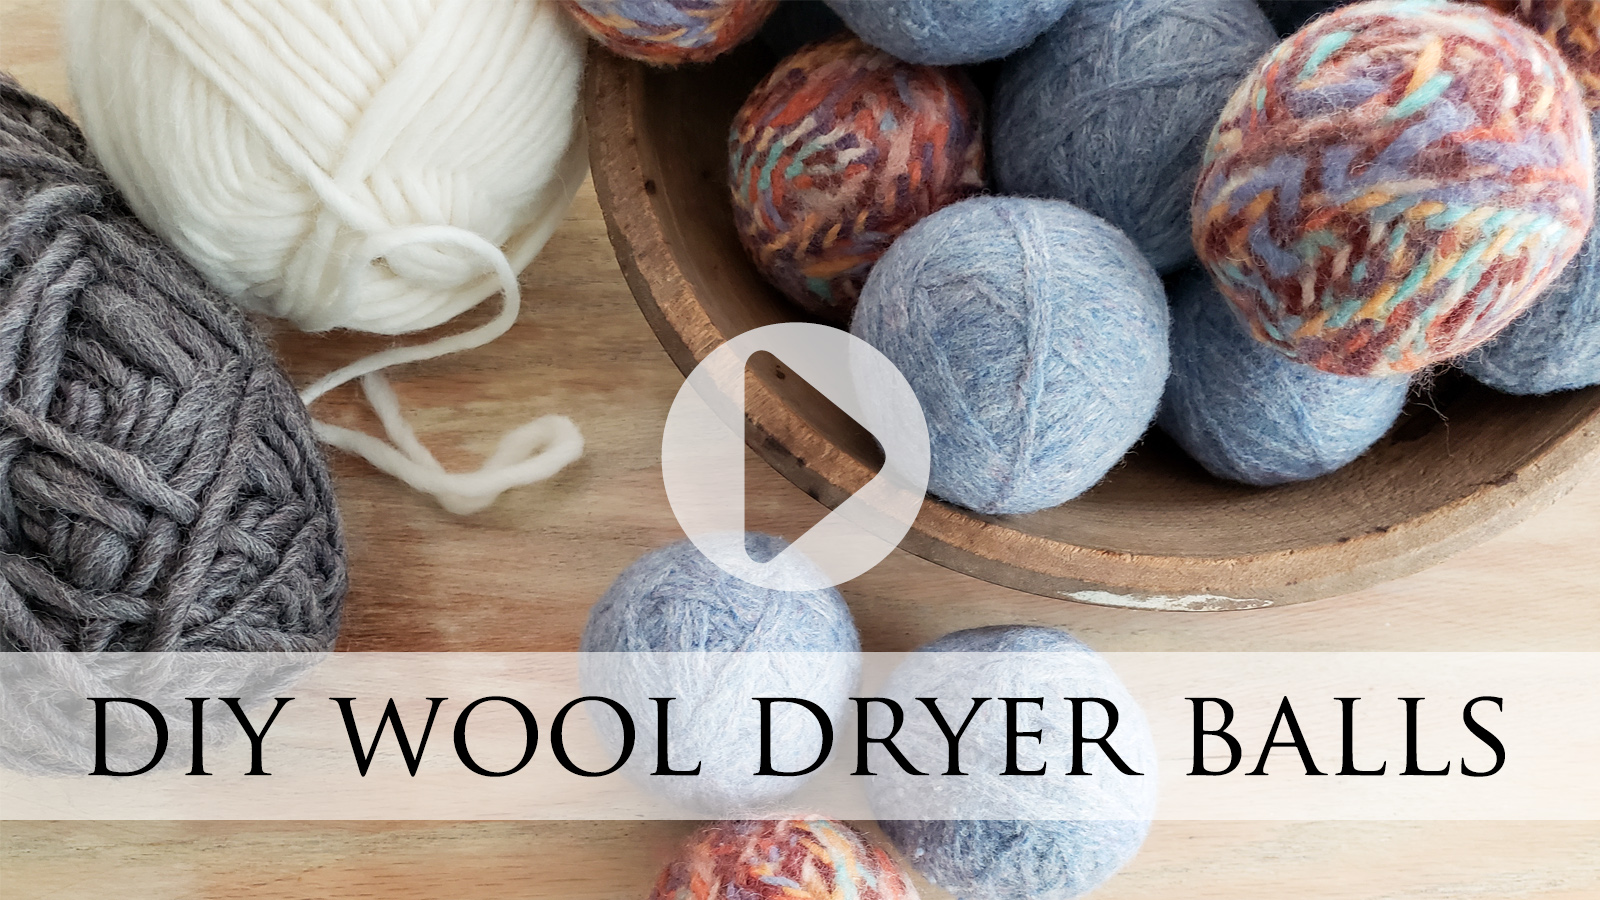 DIY Wool Dryer Balls from Felted Sweater by Larissa of Prodigal Pieces | prodigalpieces.com #prodigalpieces